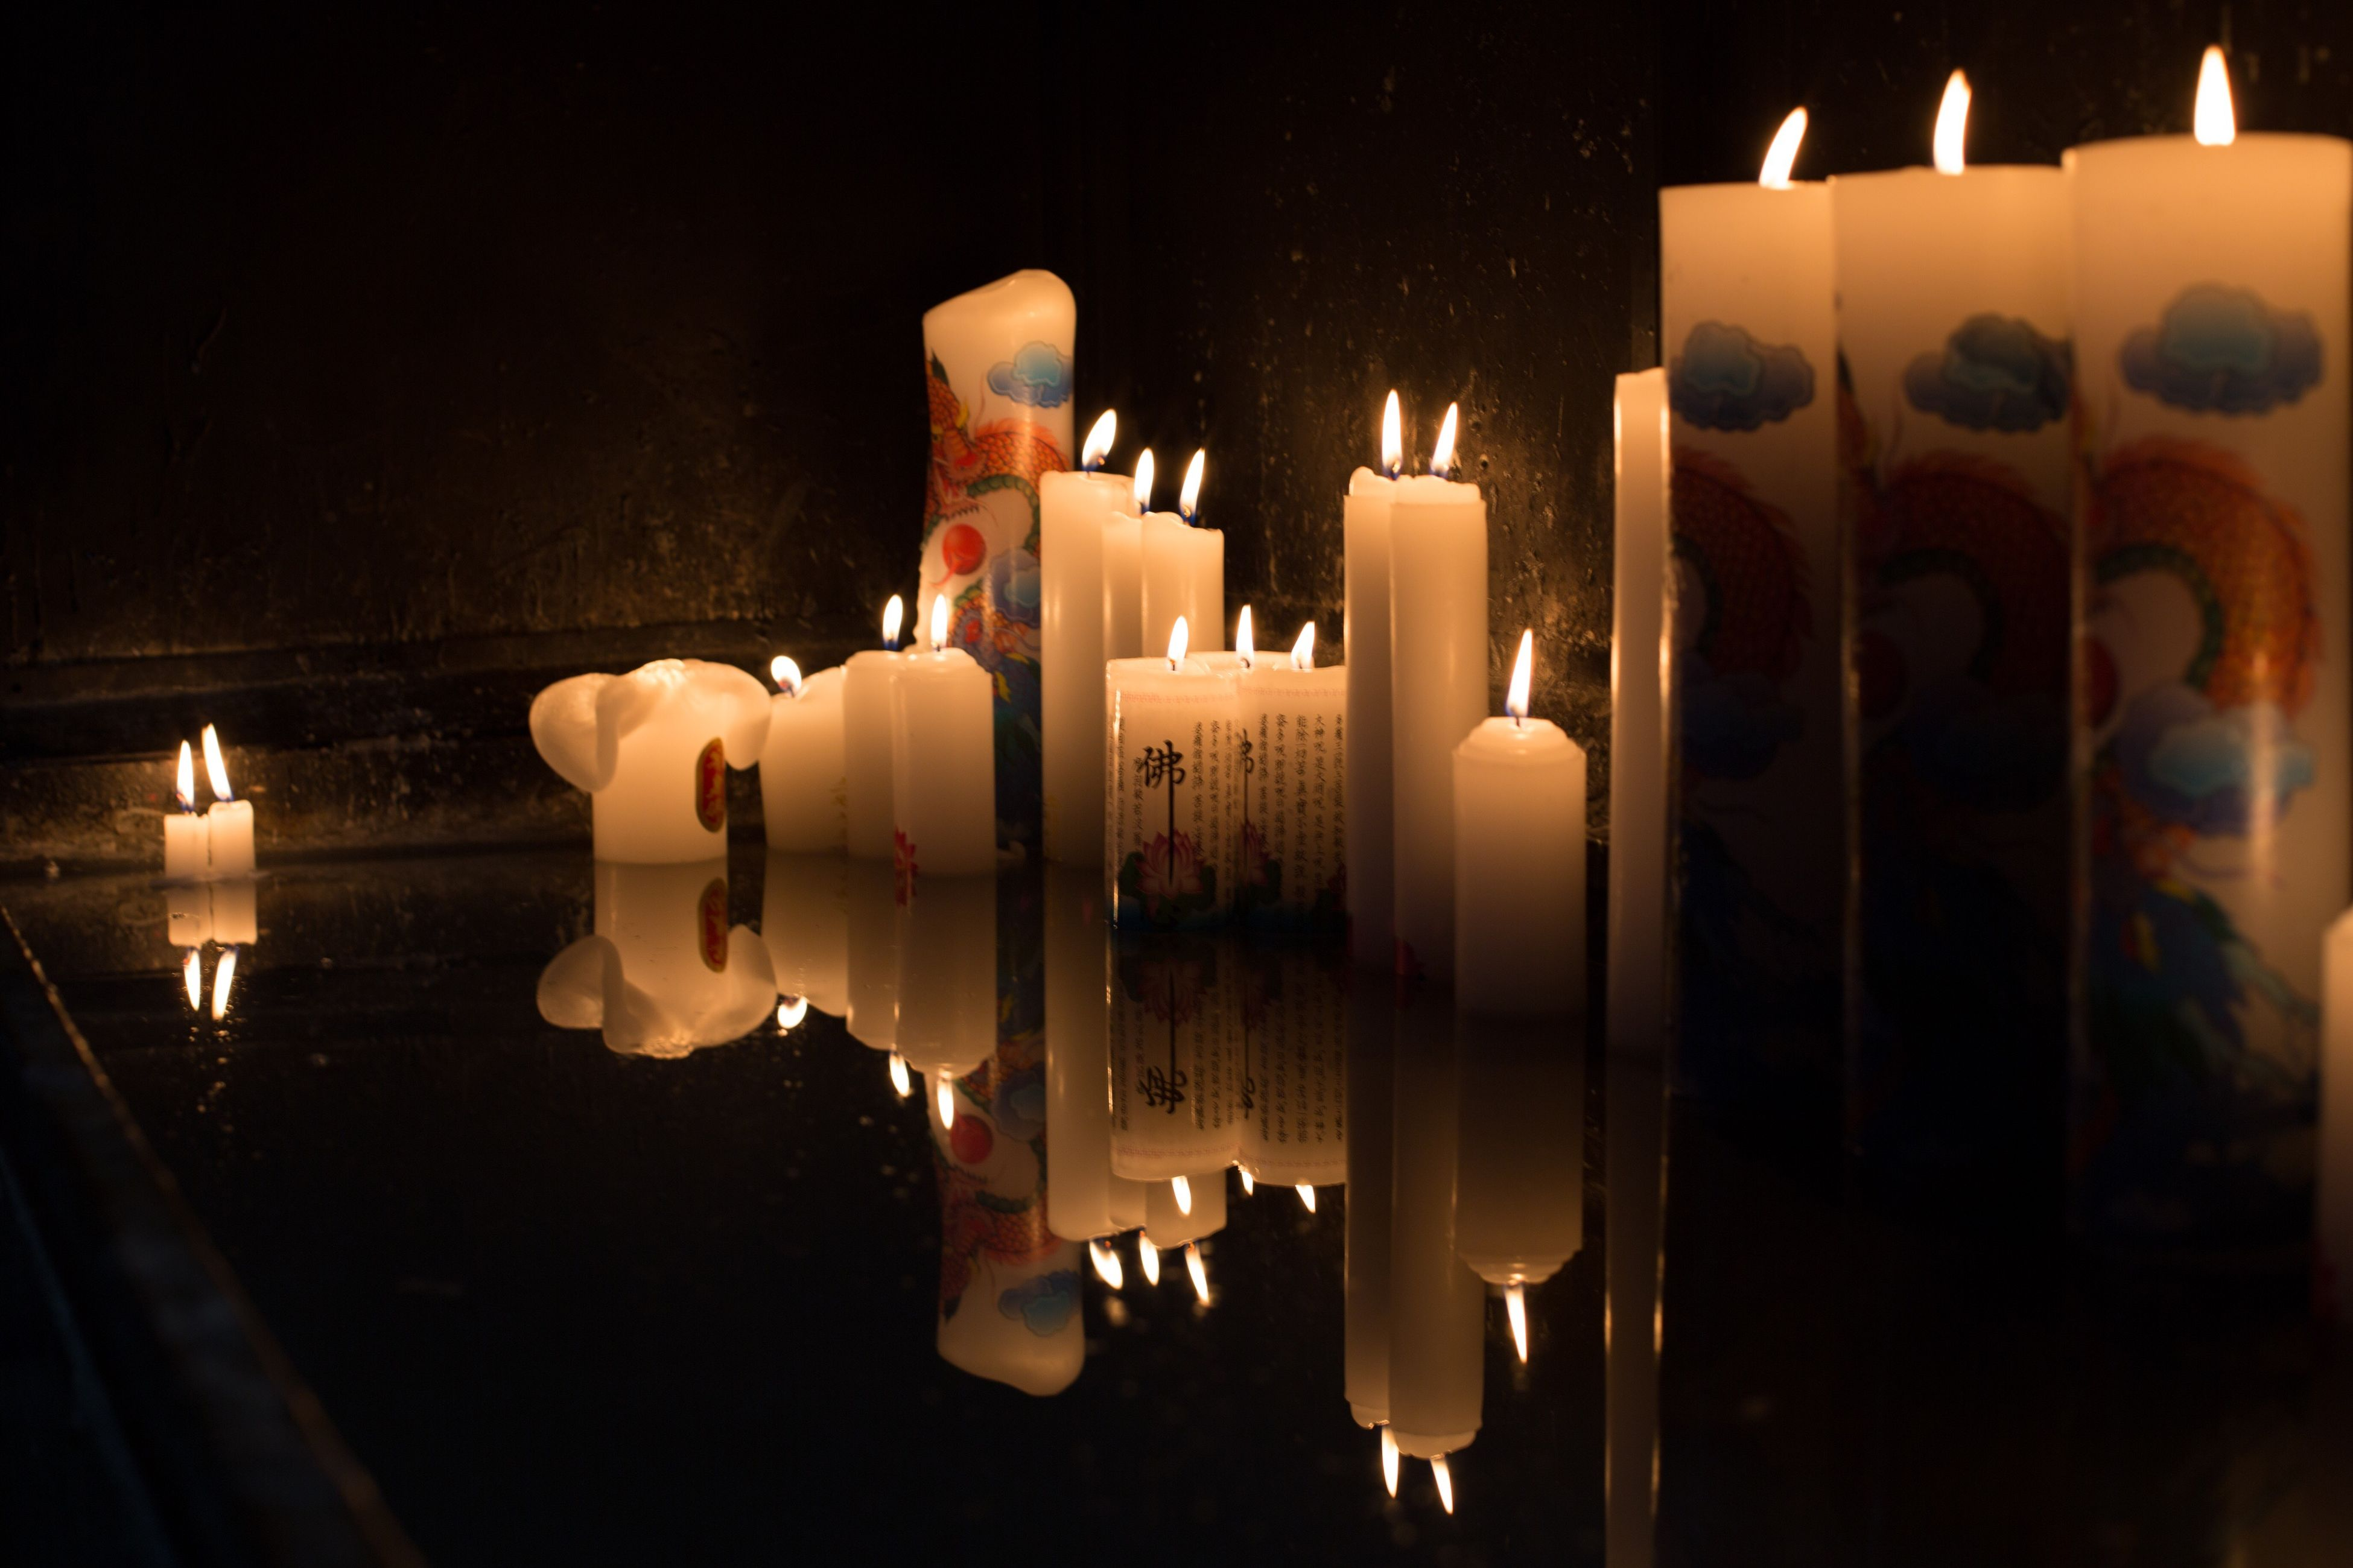 illuminated, flame, burning, candle, close-up, glowing, heat - temperature, lit, large group of objects, in a row, fire - natural phenomenon, repetition, dark, candlelight, decoration, arrangement, man made object